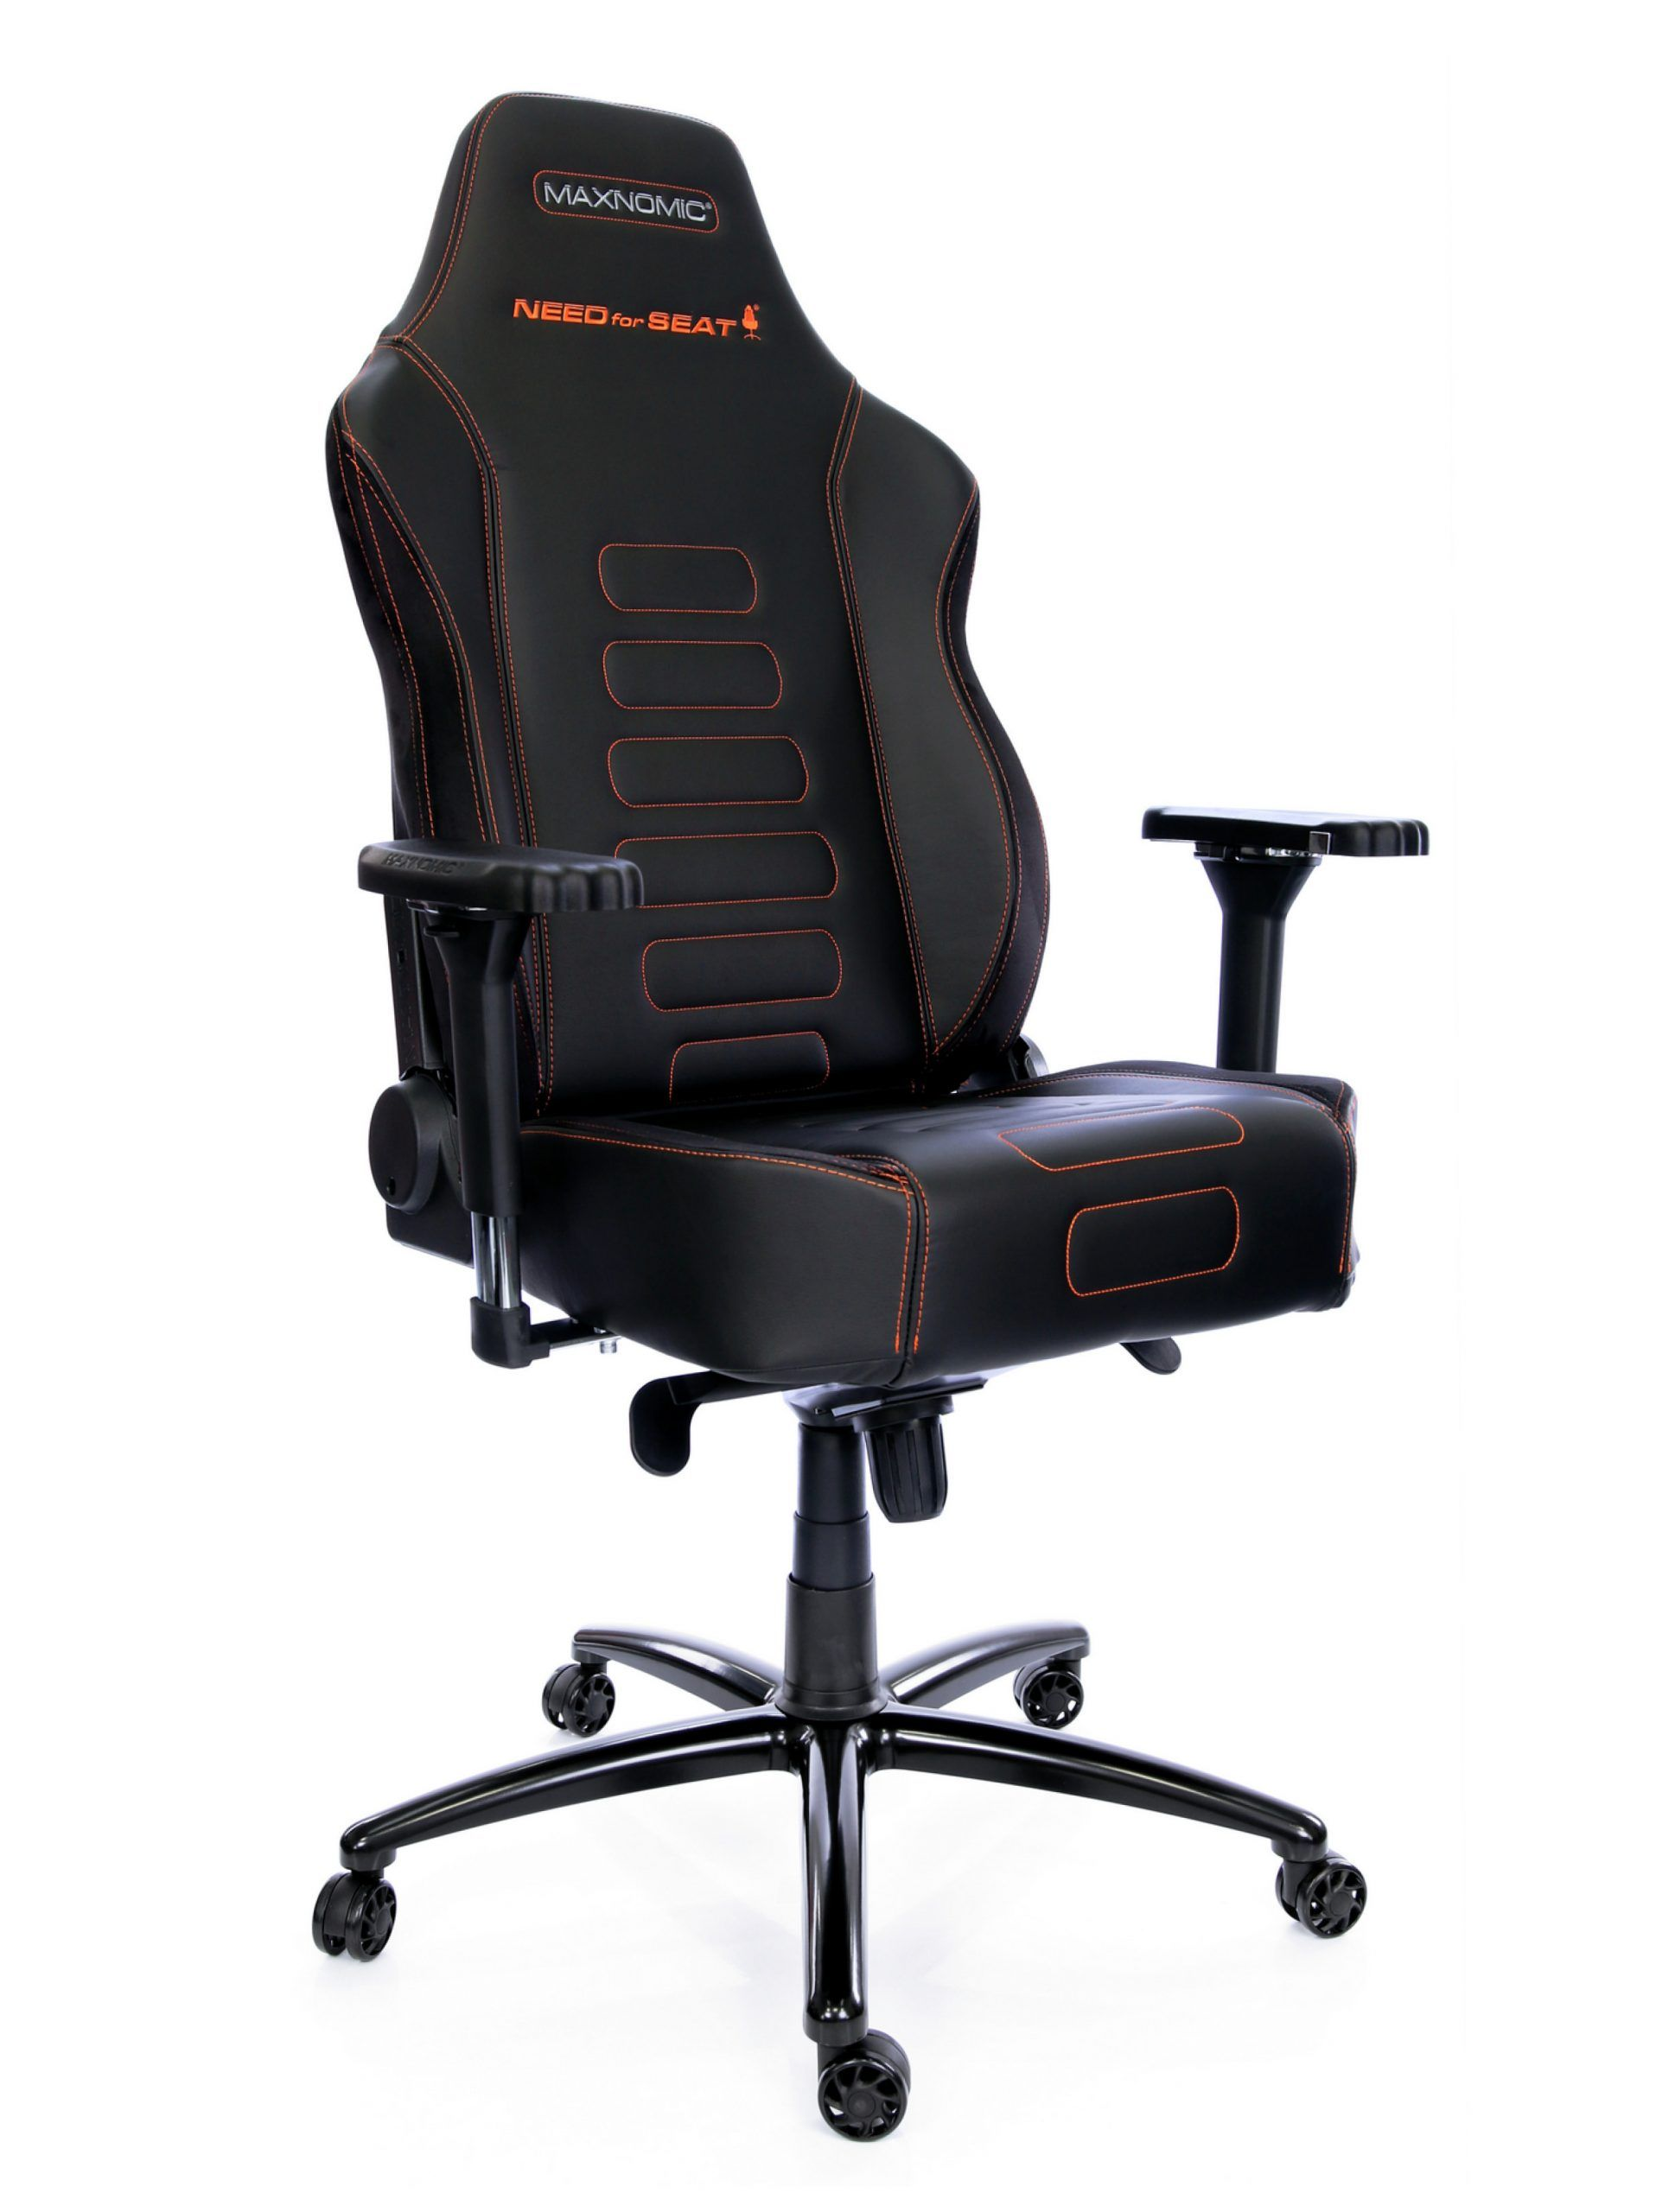 Xl Office Chair 2021 In 2020 Chair Office Chair Contemporary House Design